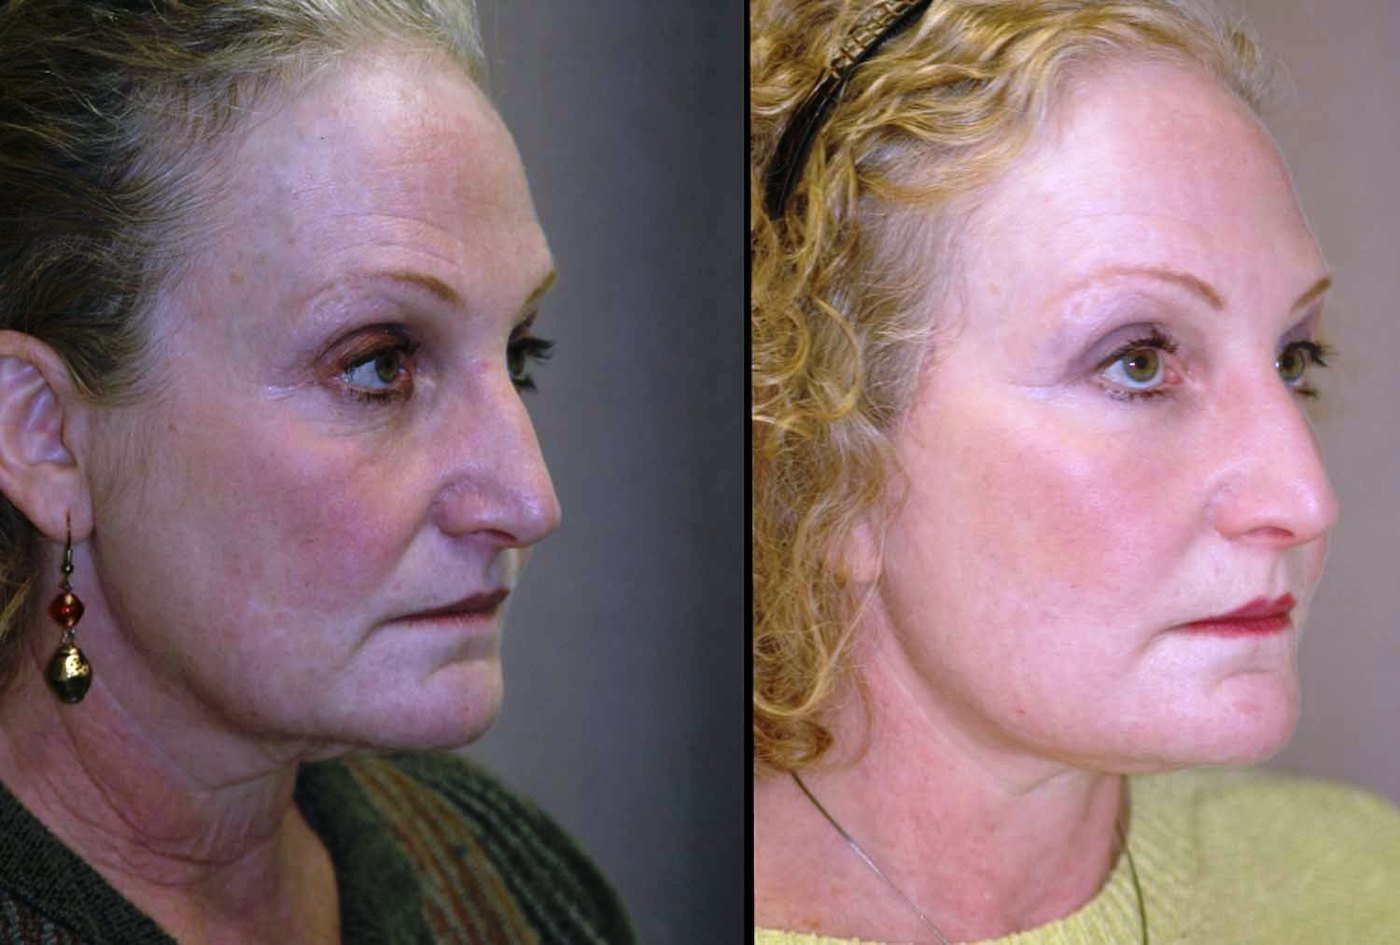 59 year-old, face-lift with submental plication of platysma muscles, laser lower eyelids and lateral canthoplasty, oblique view